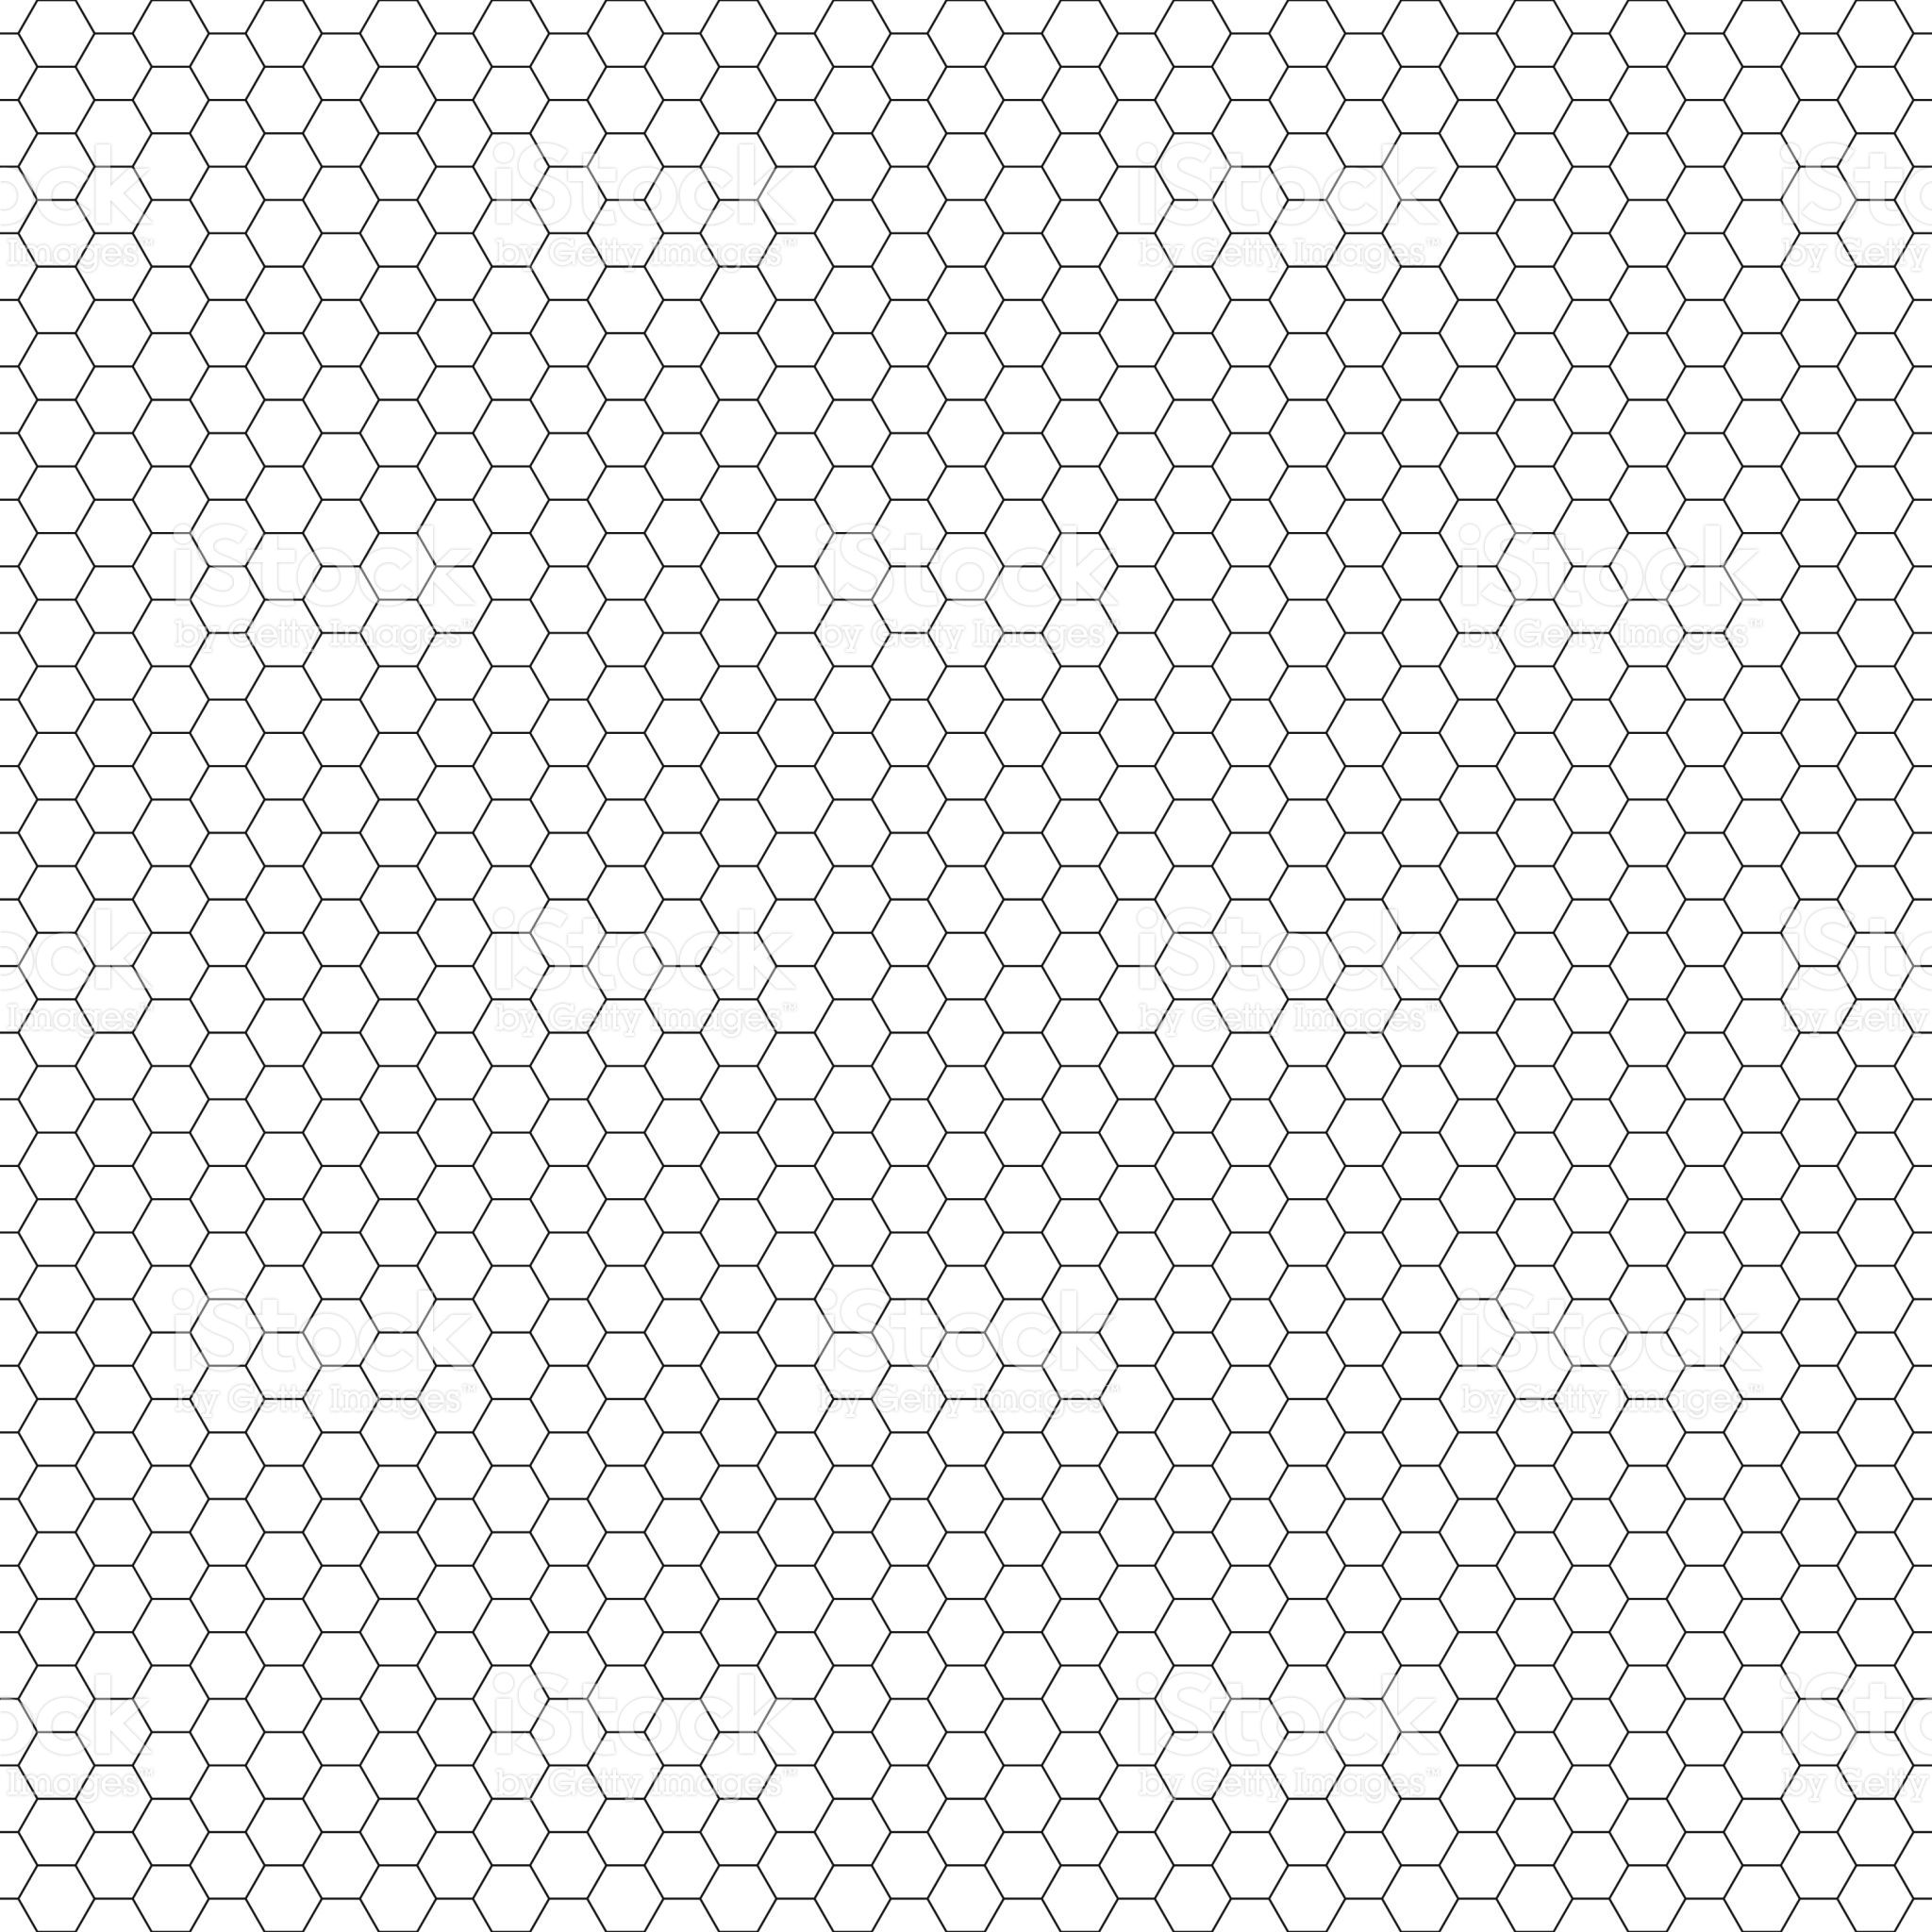 Vector Seamless Pattern Hexagon Grid Texture Black And